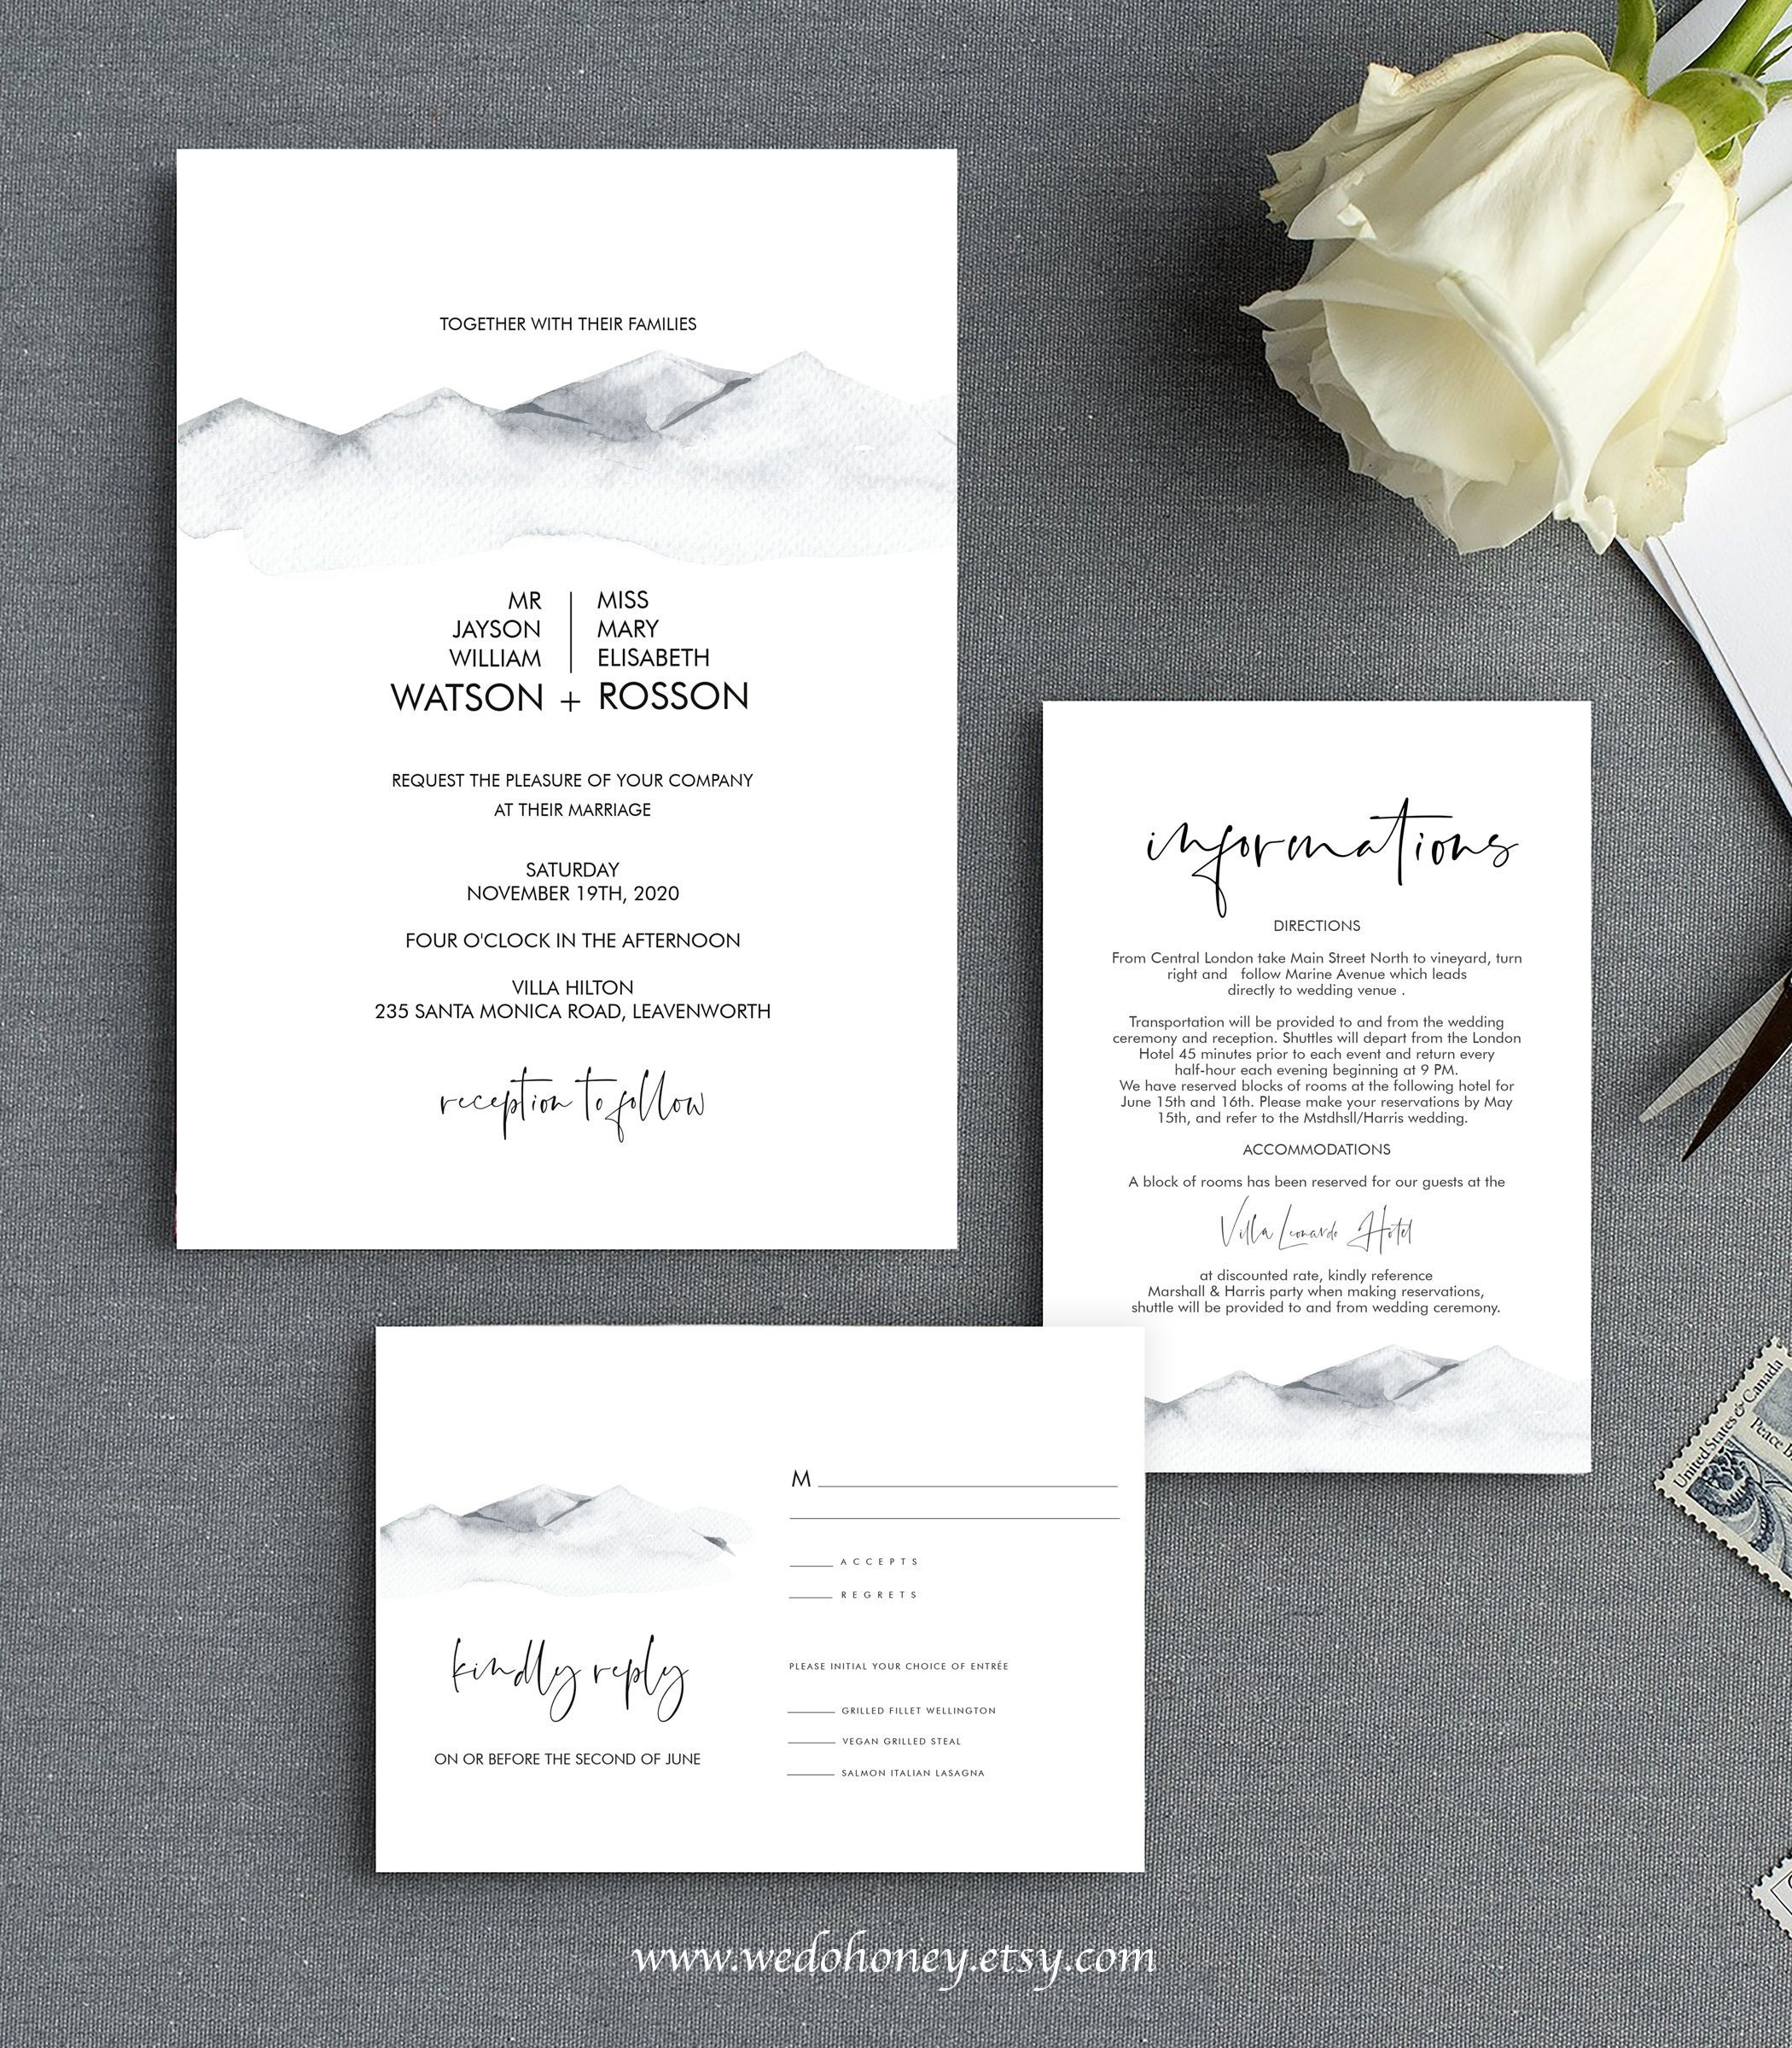 Rustic Mountain Wedding Invitation, Watercolor Mountains, Suite Template, Editable with Corjl  #071